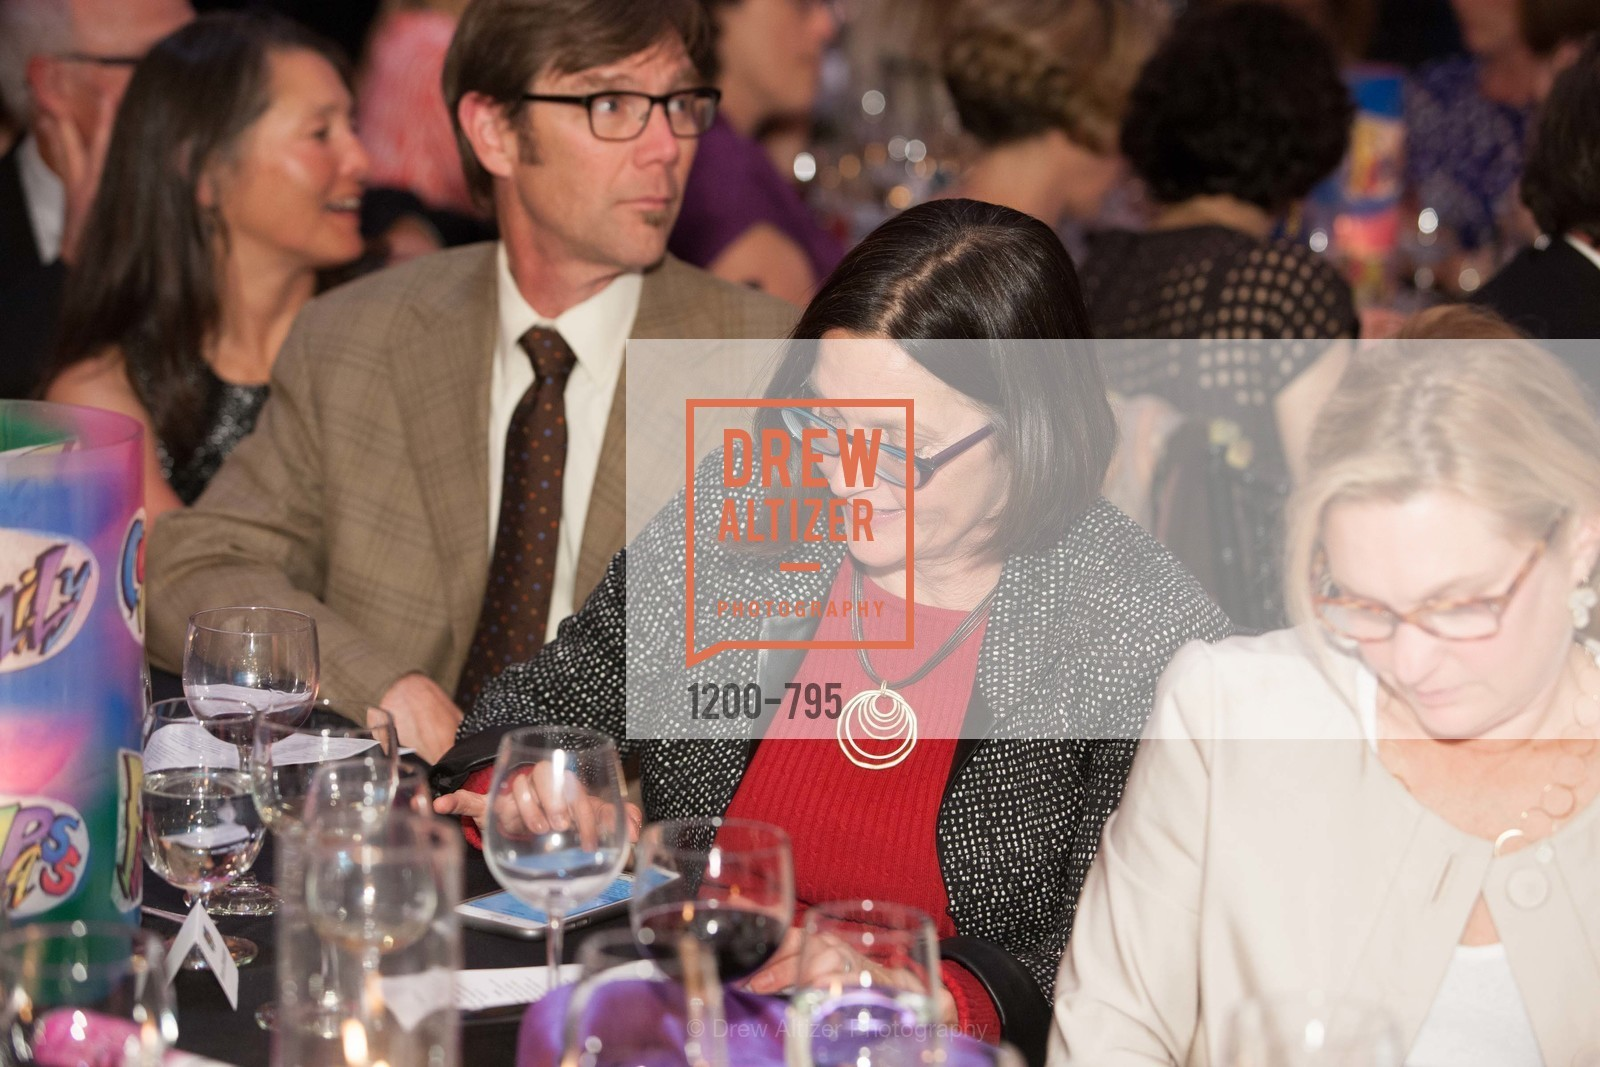 Frances Dinkelspiel, COMPASS FAMILY SERVICES Annual Spring Benefit:  Every Family Needs A Home, US, April 23rd, 2015,Drew Altizer, Drew Altizer Photography, full-service event agency, private events, San Francisco photographer, photographer California